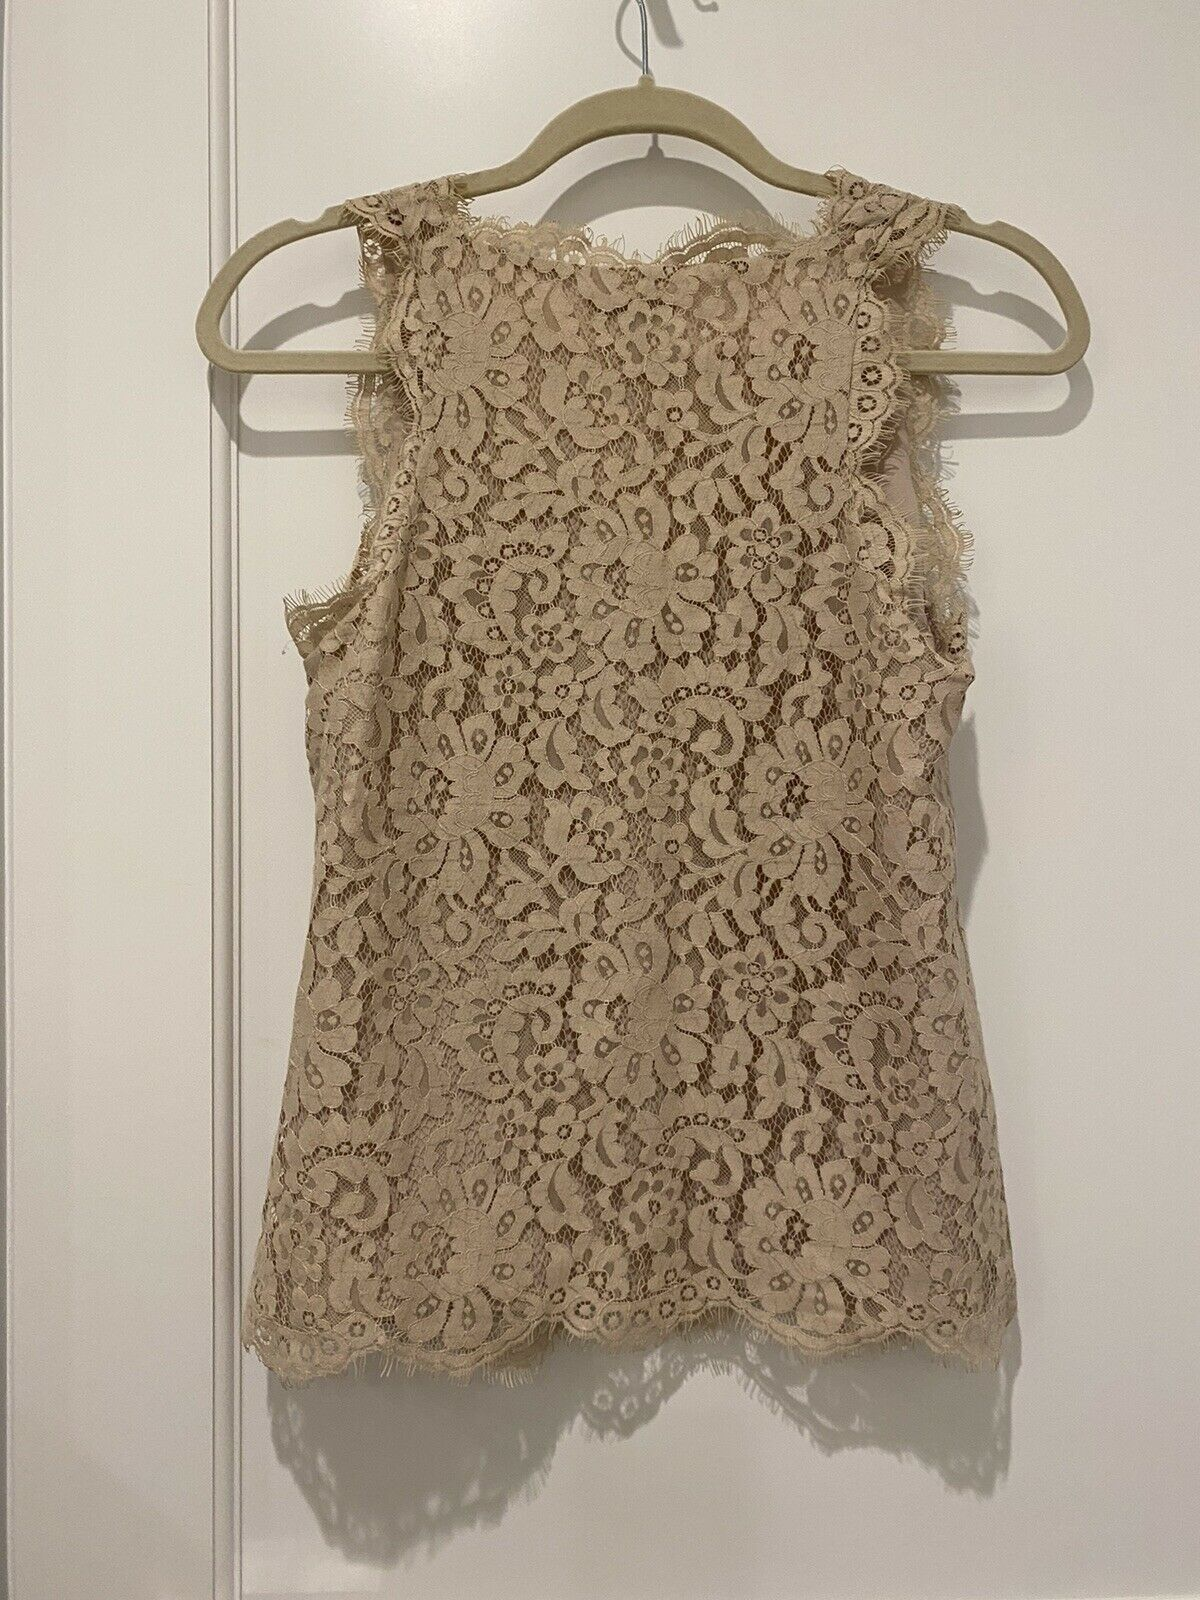 Joie dusty pink Lace Tank Top - image 2